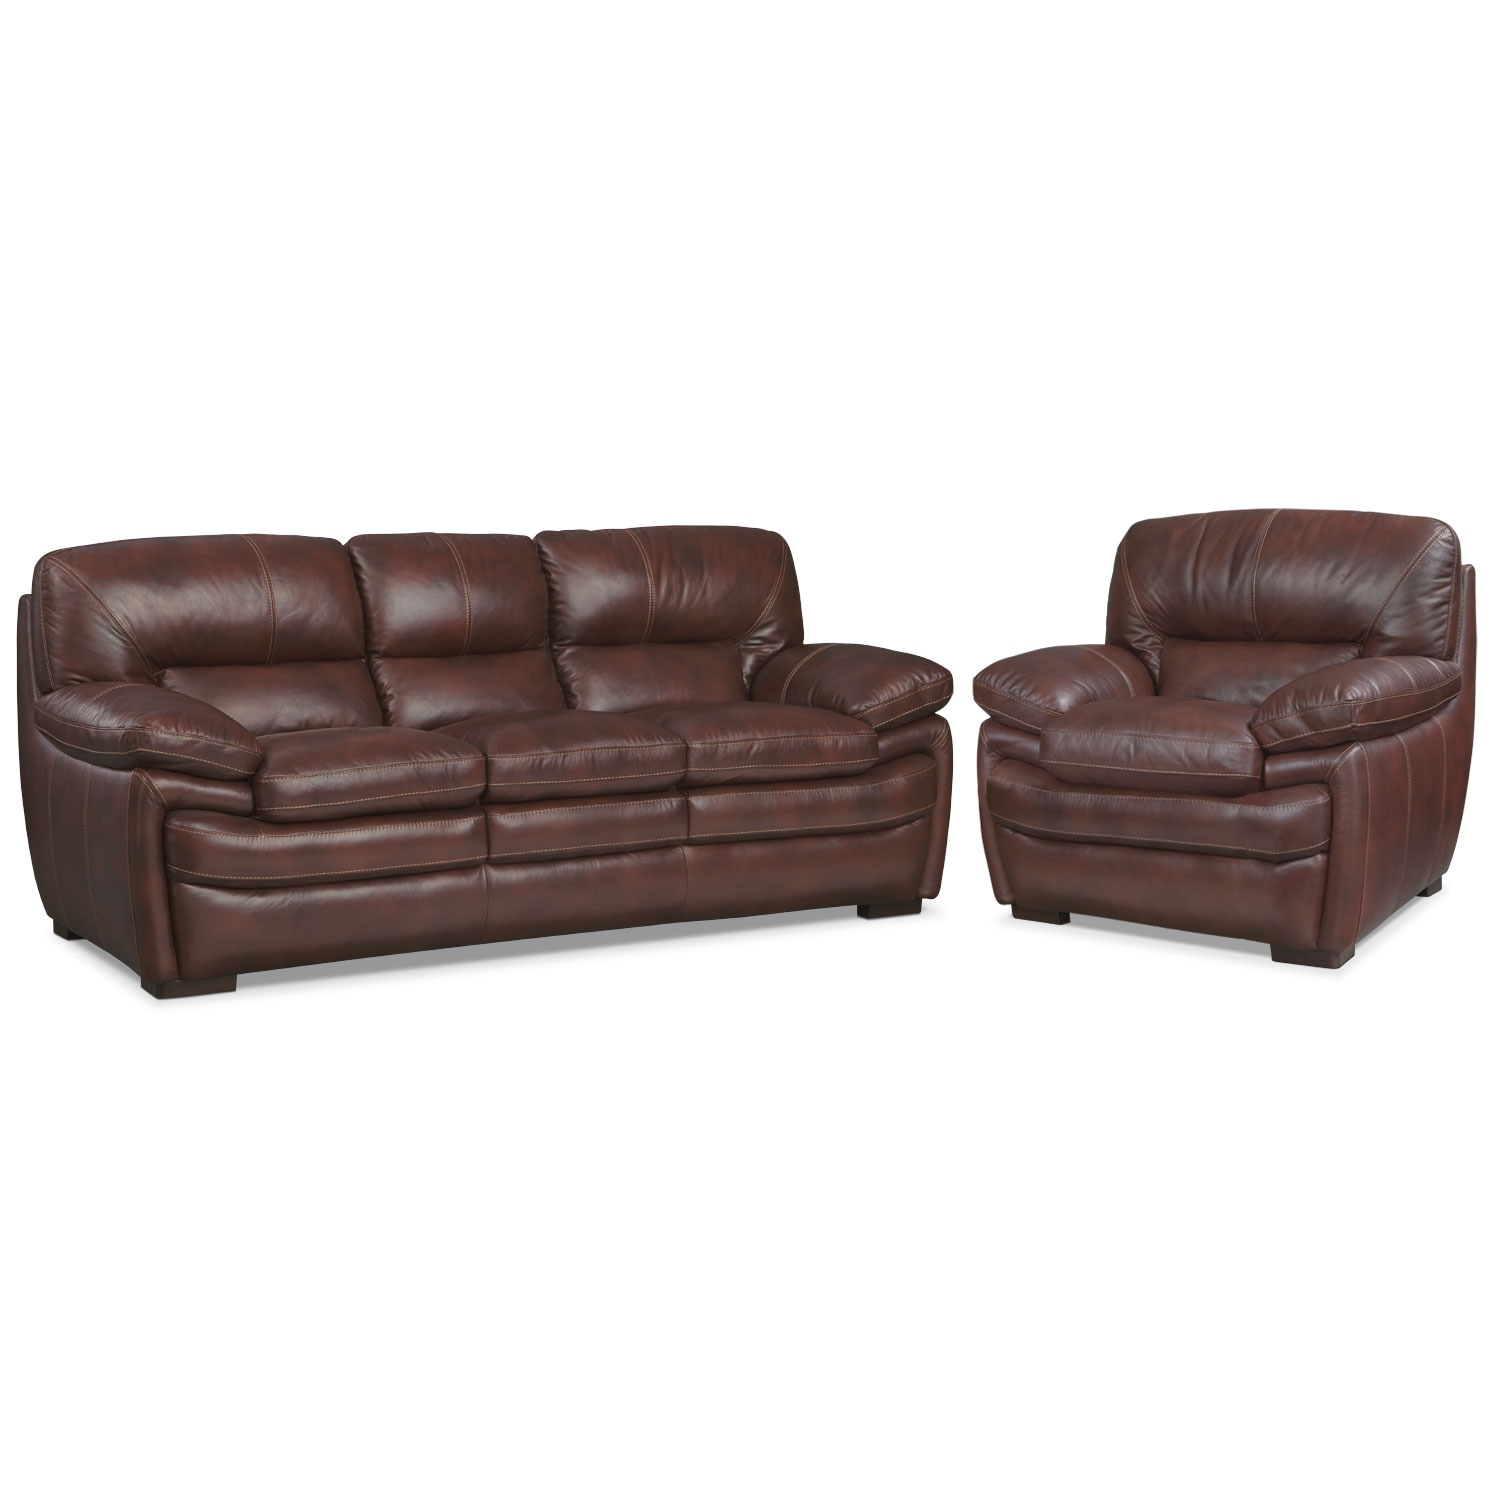 Living Room Furniture - Peyton Chestnut 2 Pc. Living Room w/ Chair